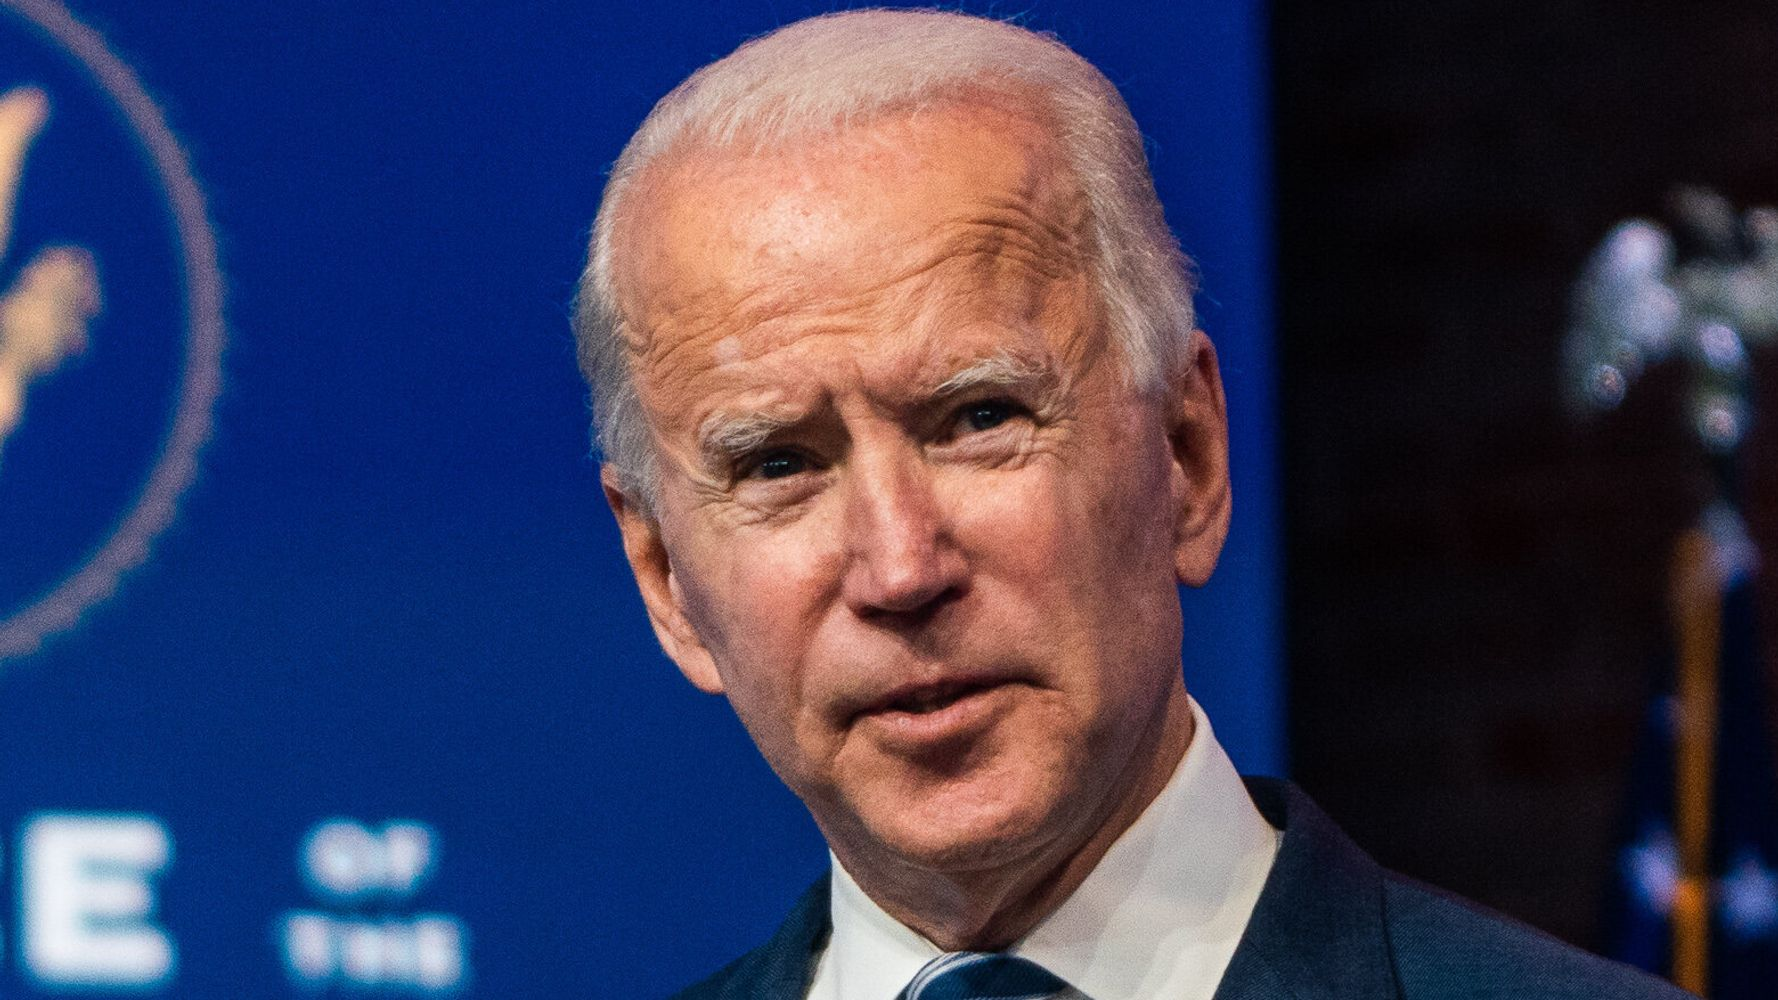 Biden Faces Tough Choice Over COVID-19 Lockdowns